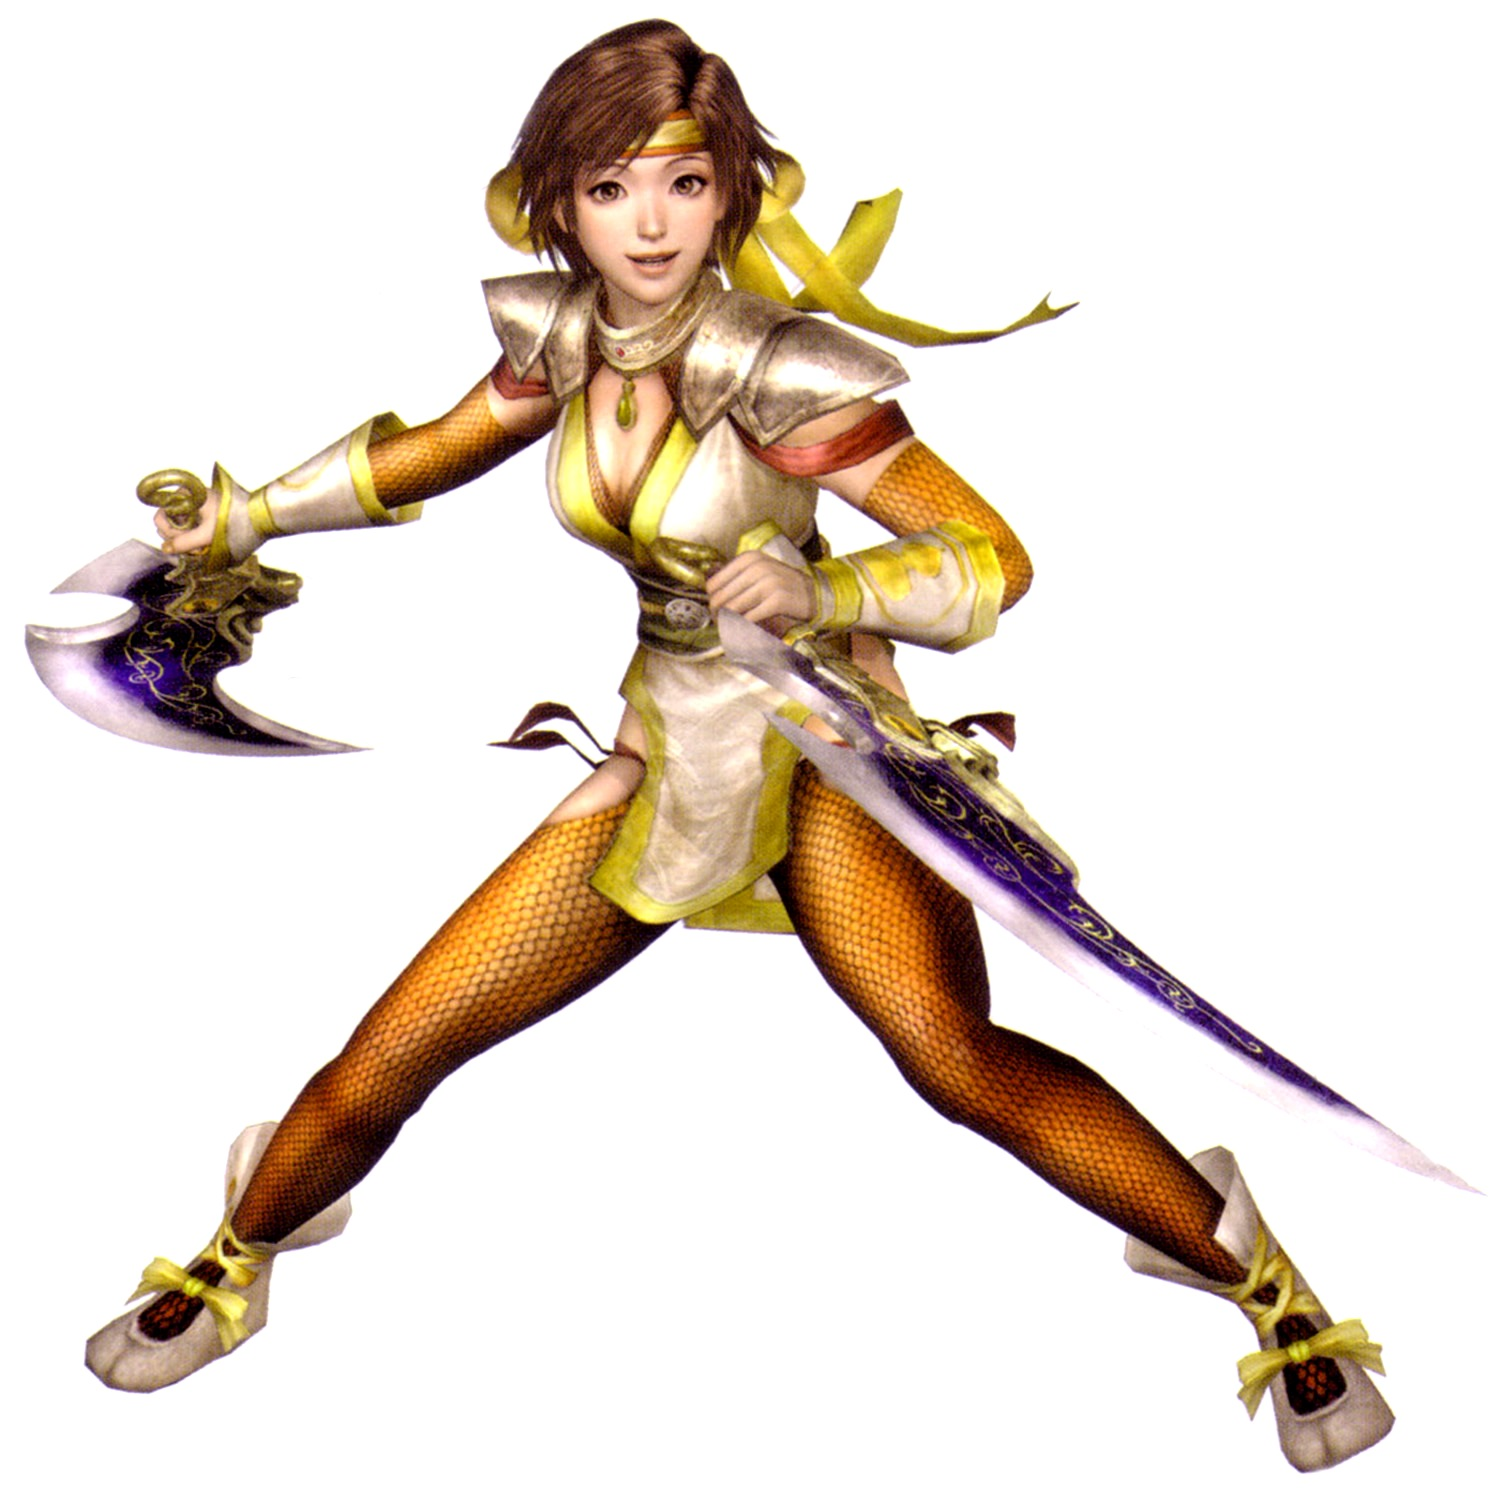 Warriors orochi 3 girls nude sexy pic